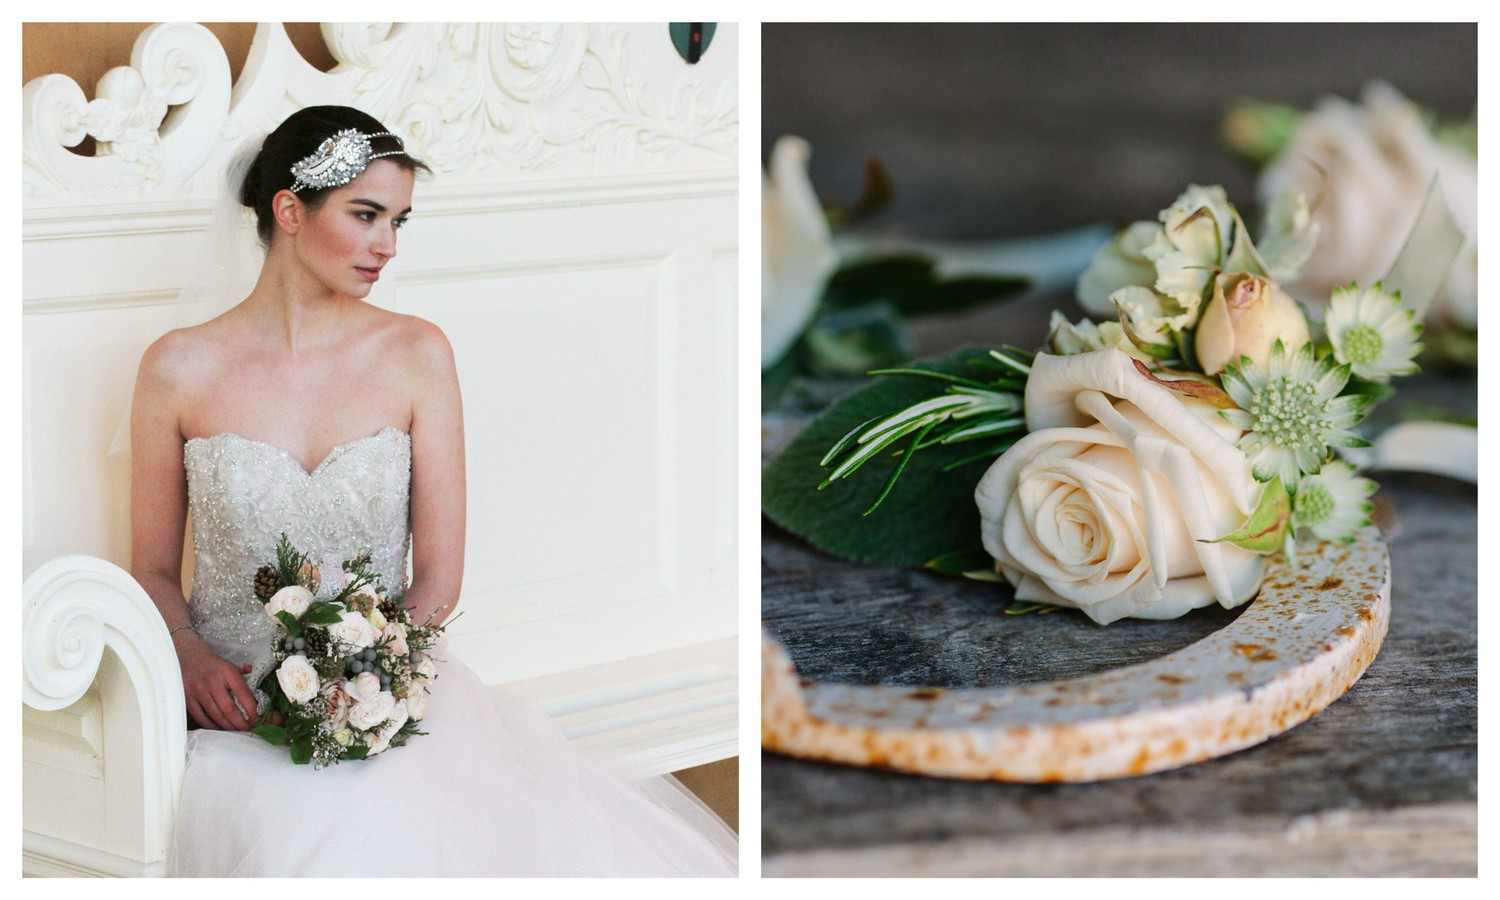 Wedding Flowers in white, blush and silver